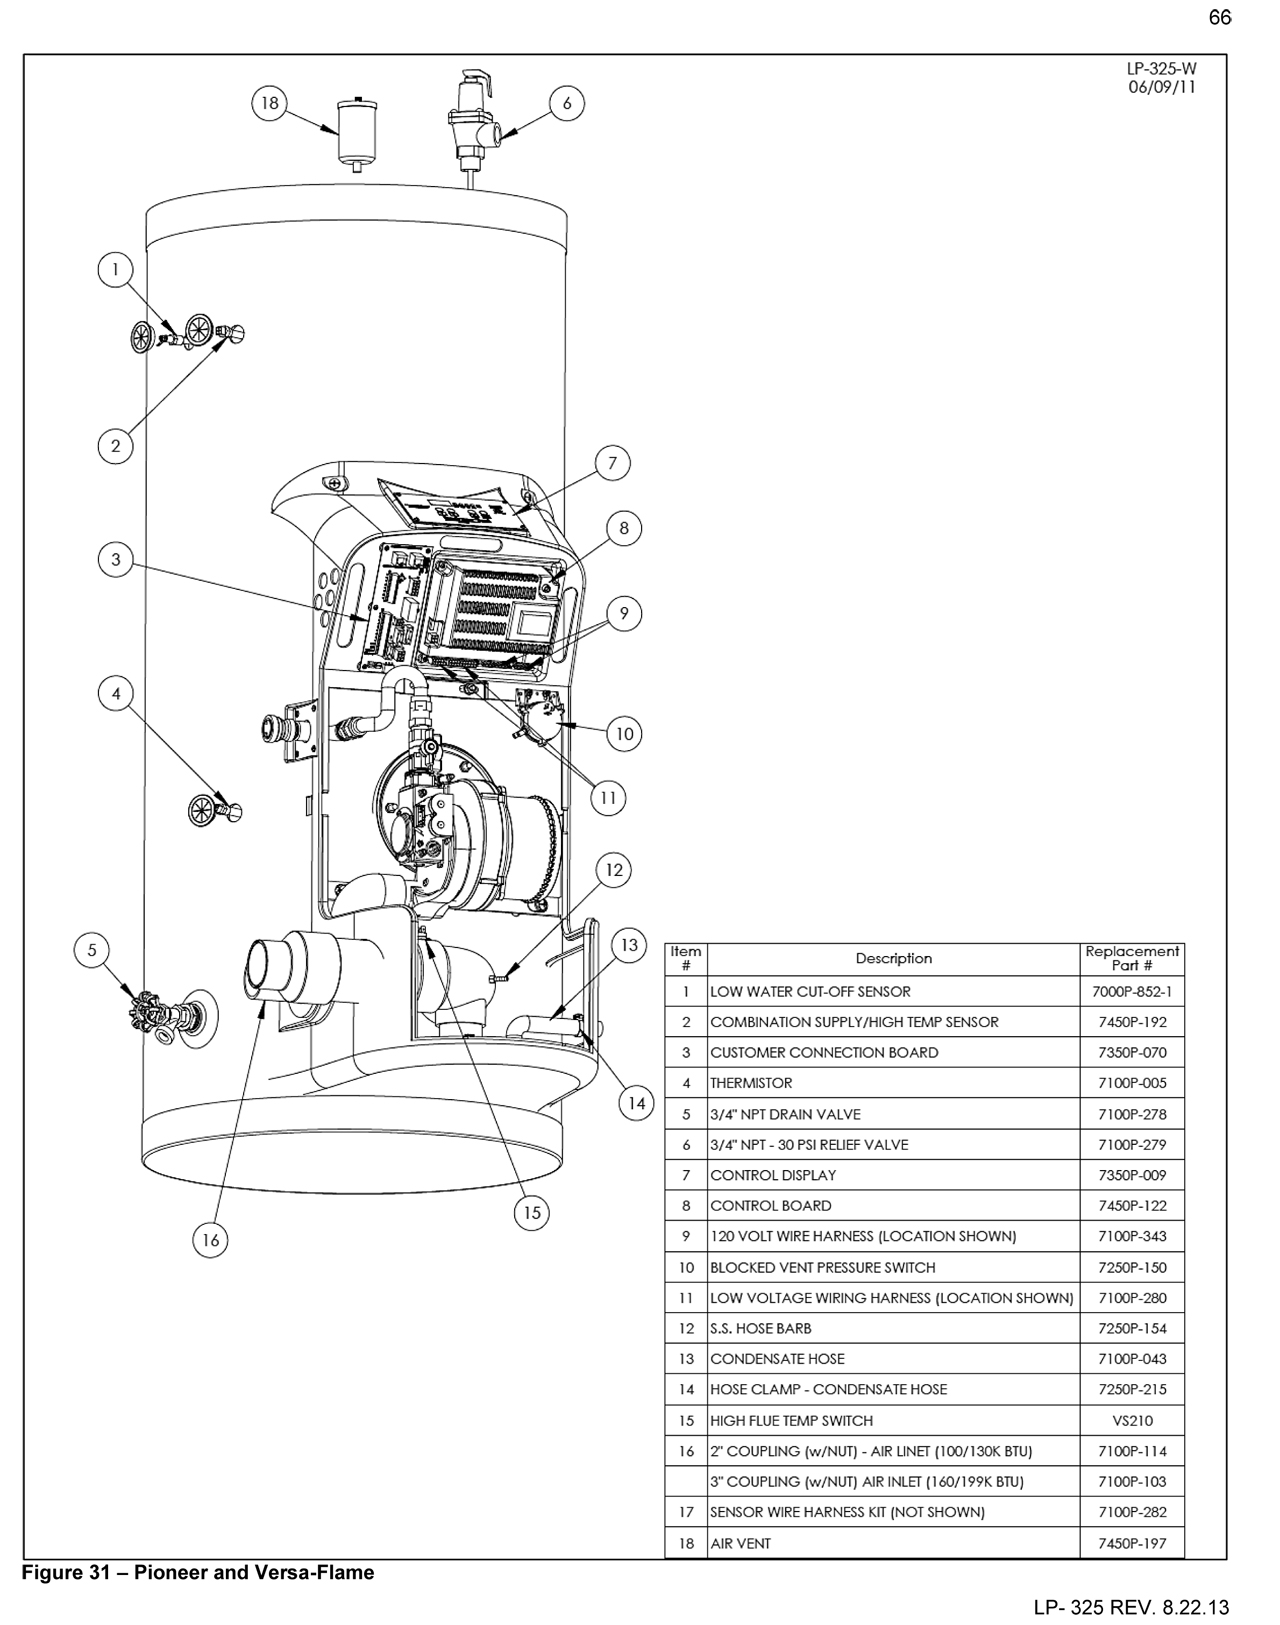 Pioneer Gas Fired Heater Parts Drawings